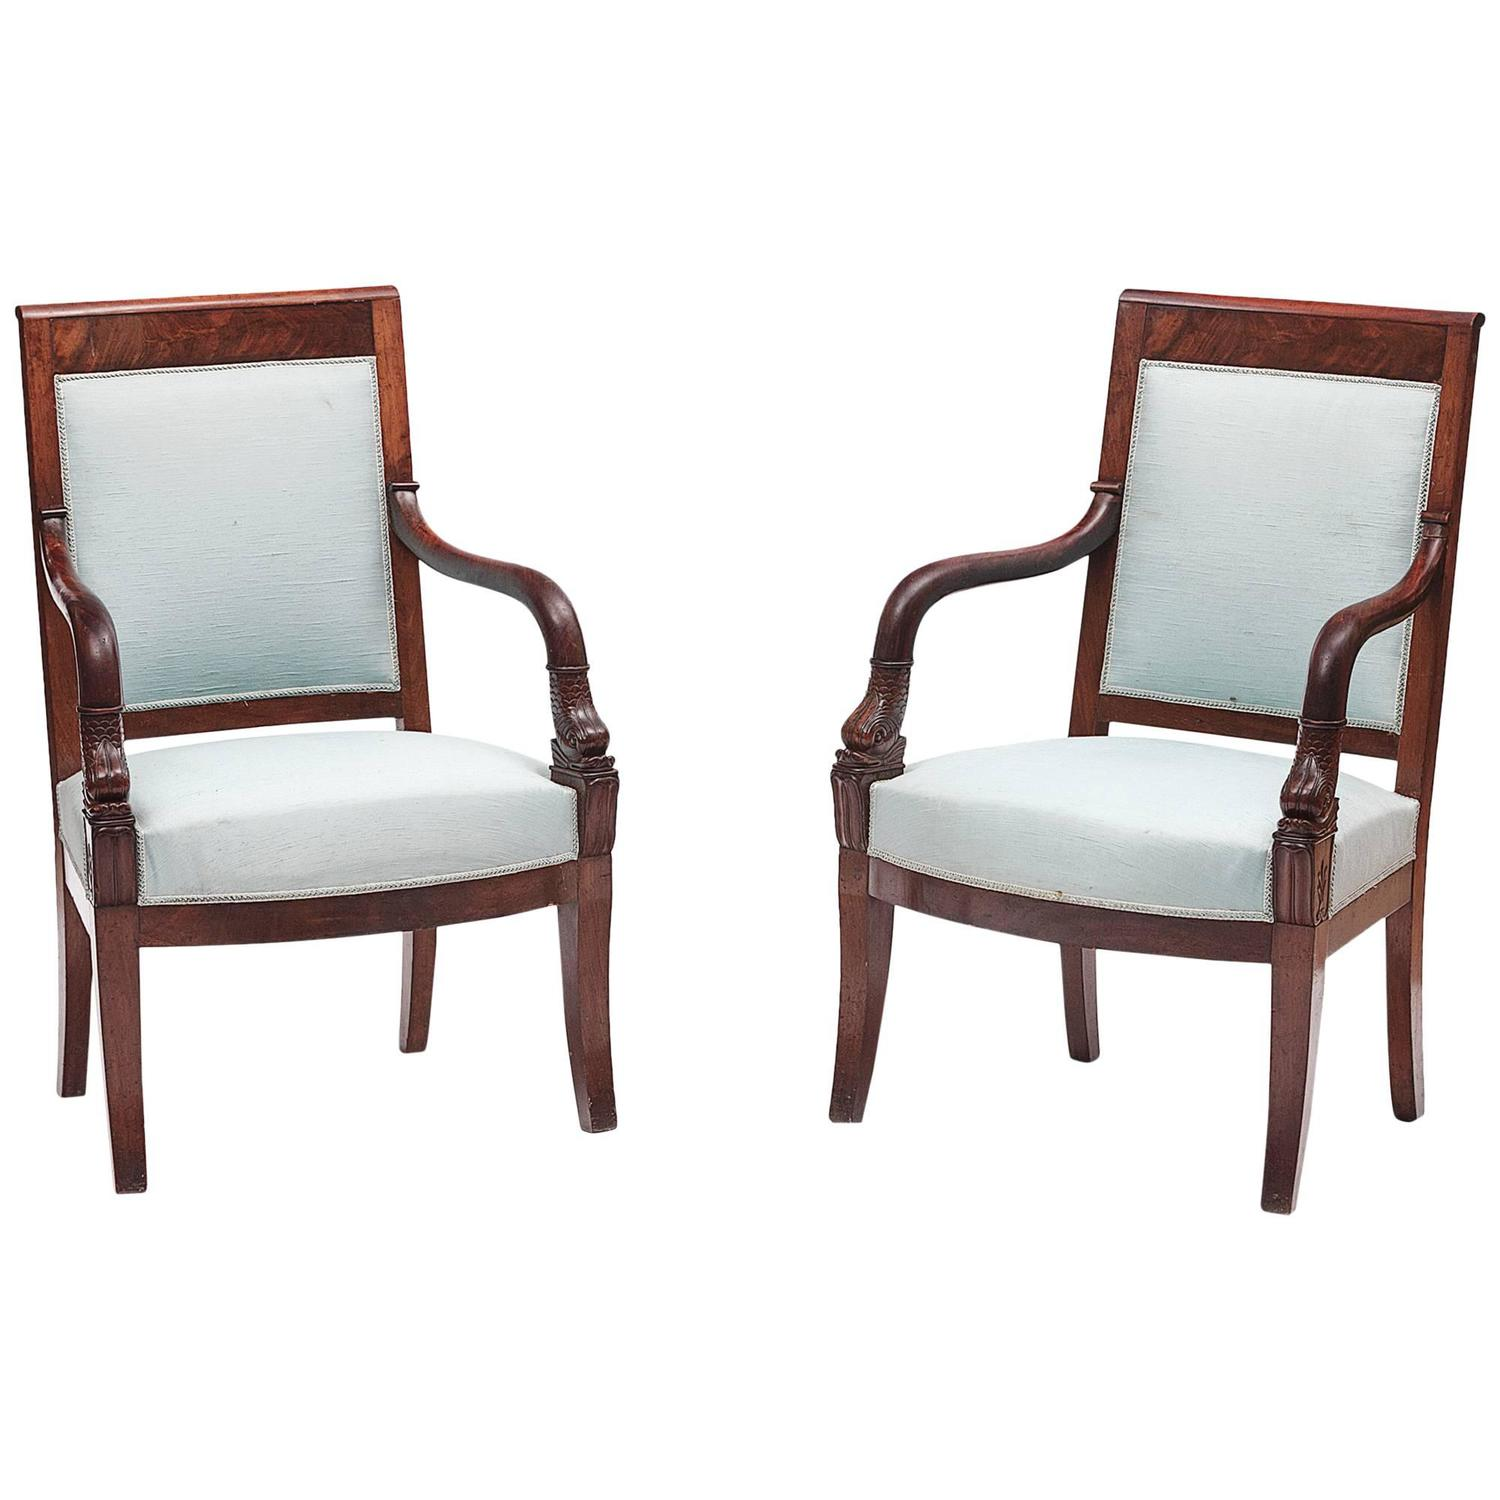 Early 19th Century Pair of Biedermeier Chairs at 1stdibs